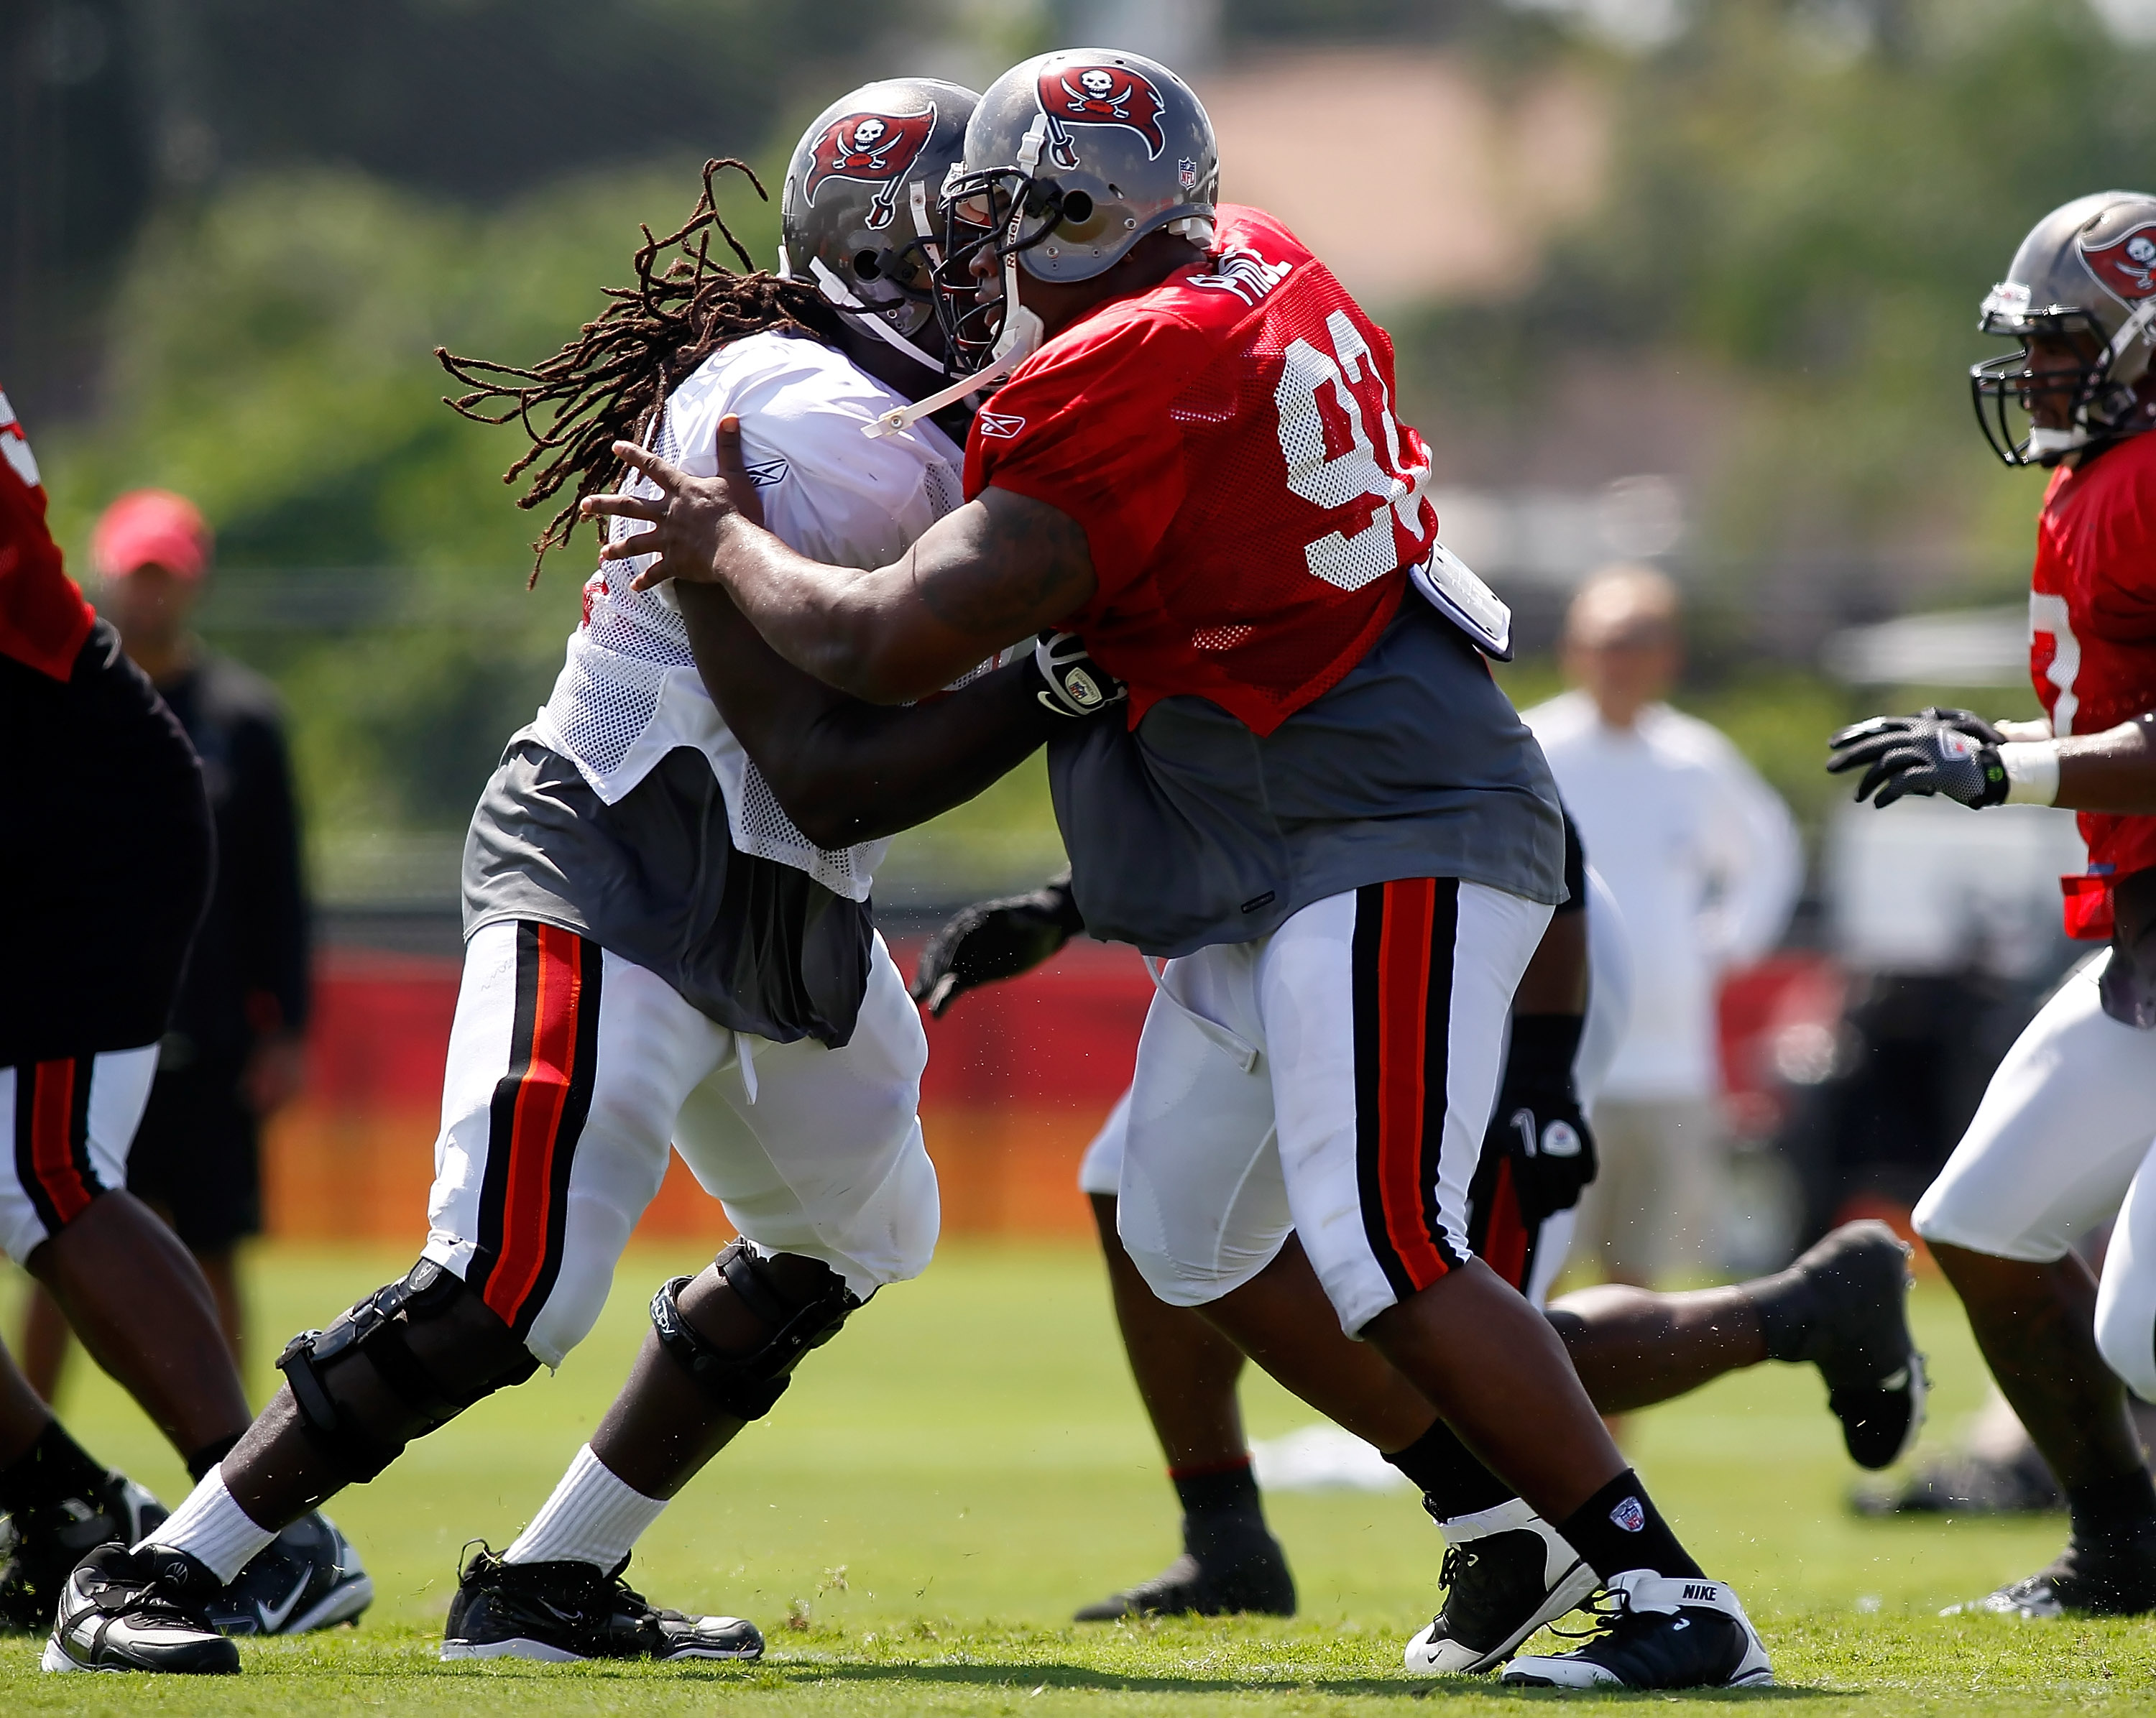 TAMPA - JULY 31:  Defensive tackle Brian Price #92 of the Tampa Bay Buccaneers works against offensive lineman Davin Joseph #75 during training camp at One Buccaneer Place on July 31, 2010 in Tampa, Florida.  (Photo by J. Meric/Getty Images)